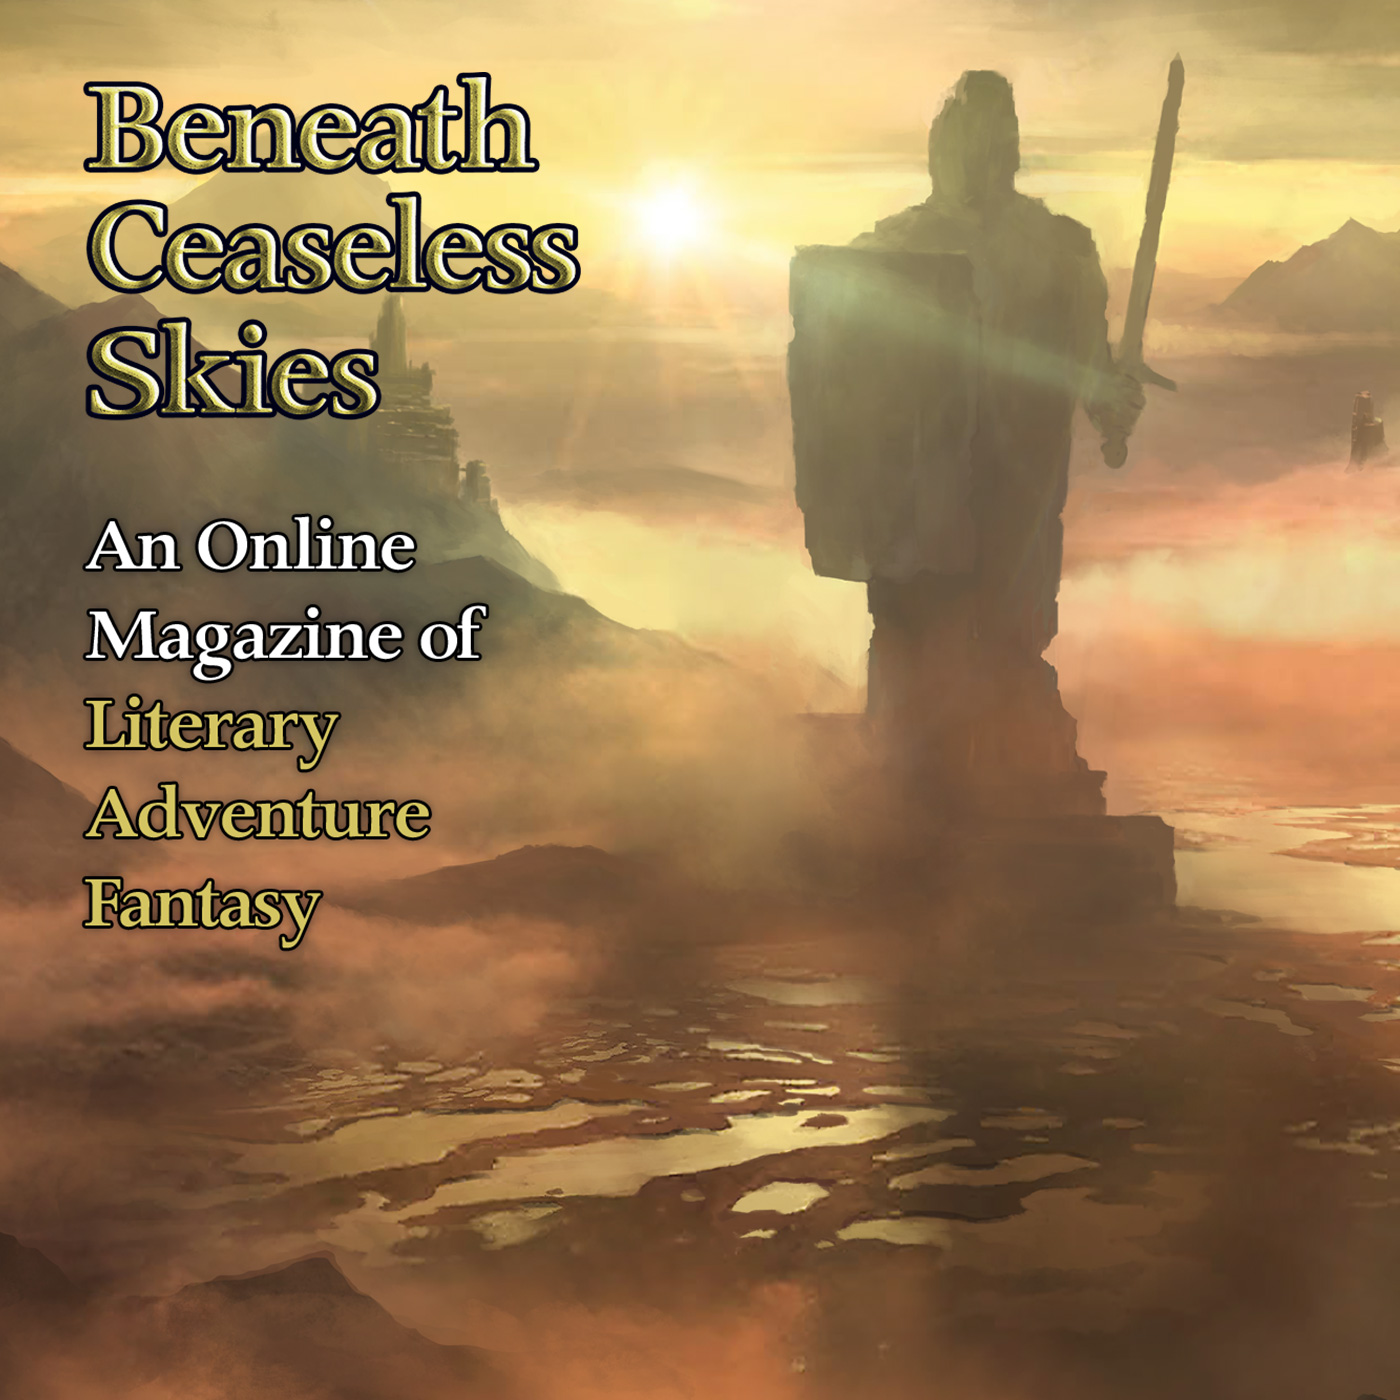 Beneath Ceaseless Skies Audio Fiction Podcasts